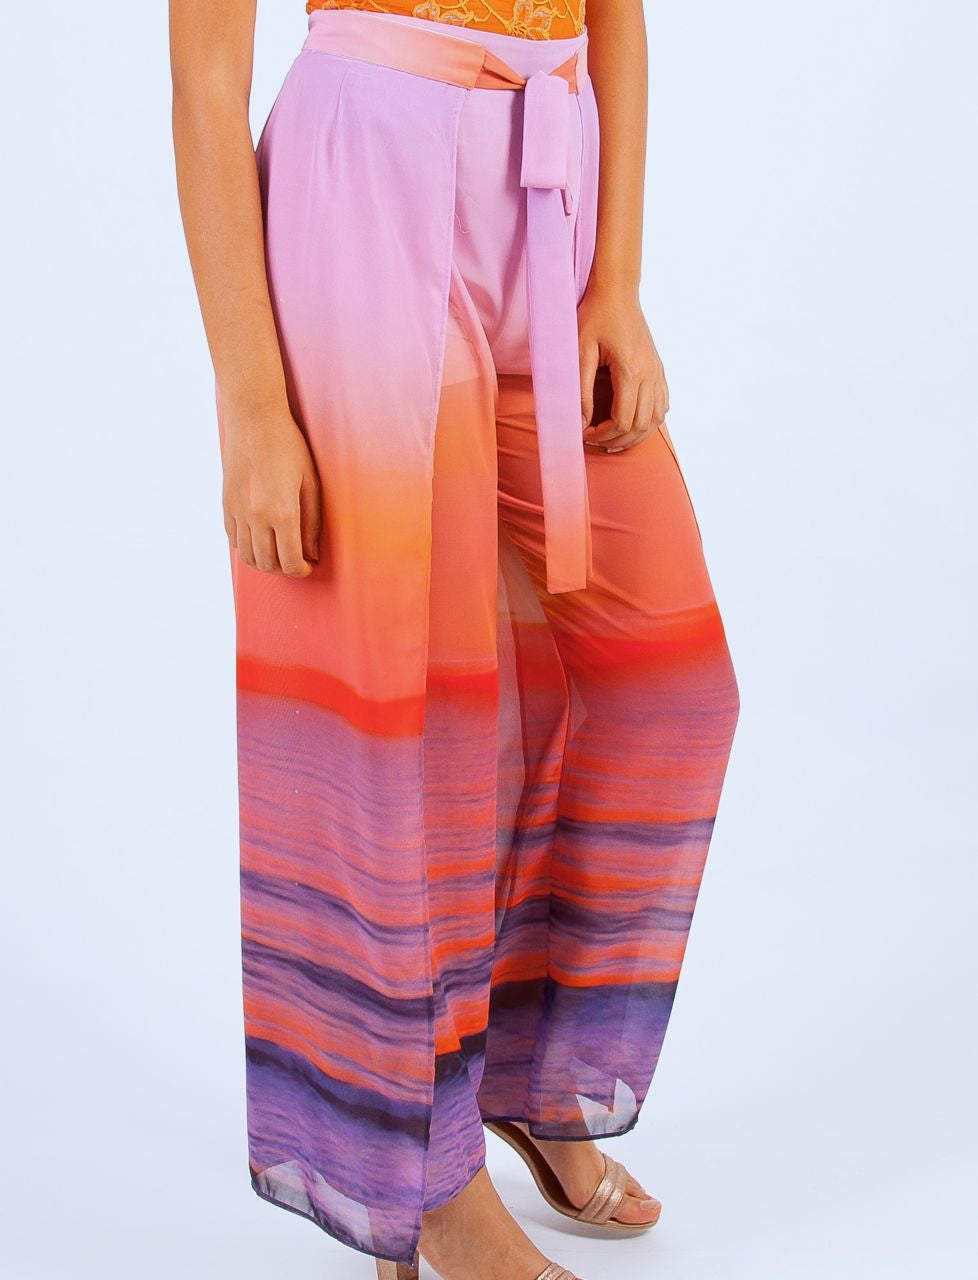 Women's Wrap Pants Chiffon Sunrise Print